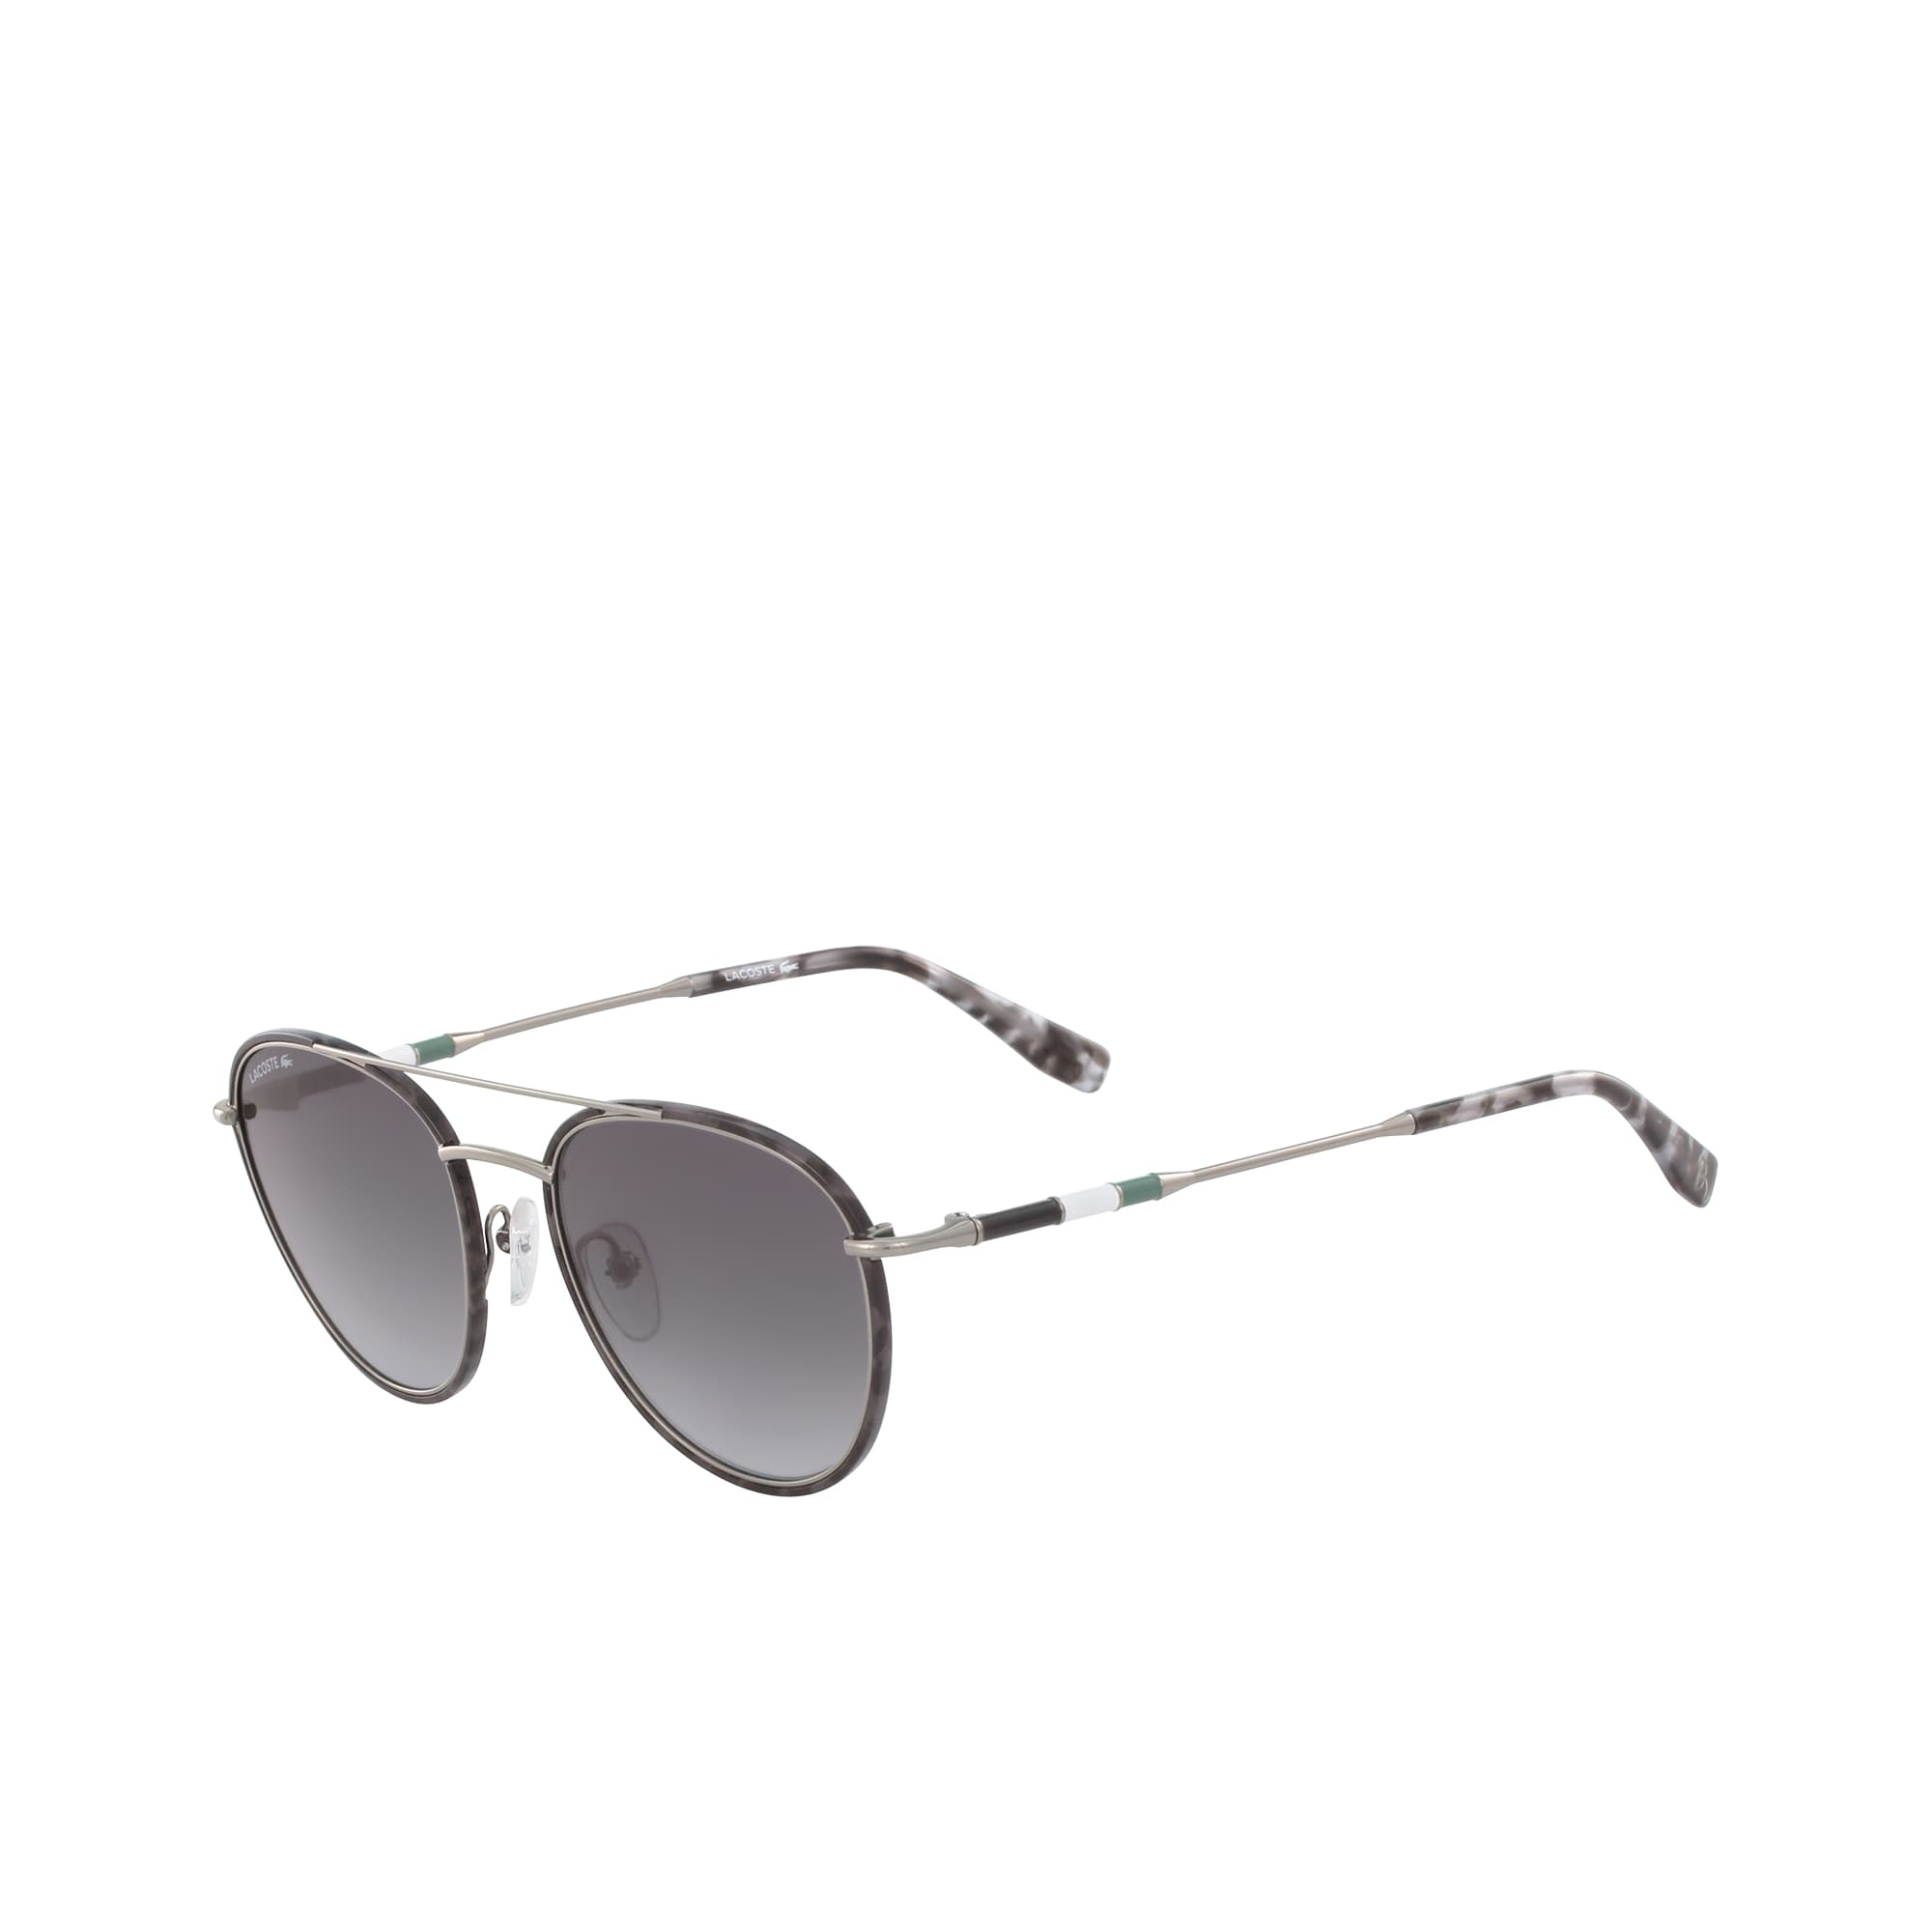 3e3366226a4 Men s Sunglasses